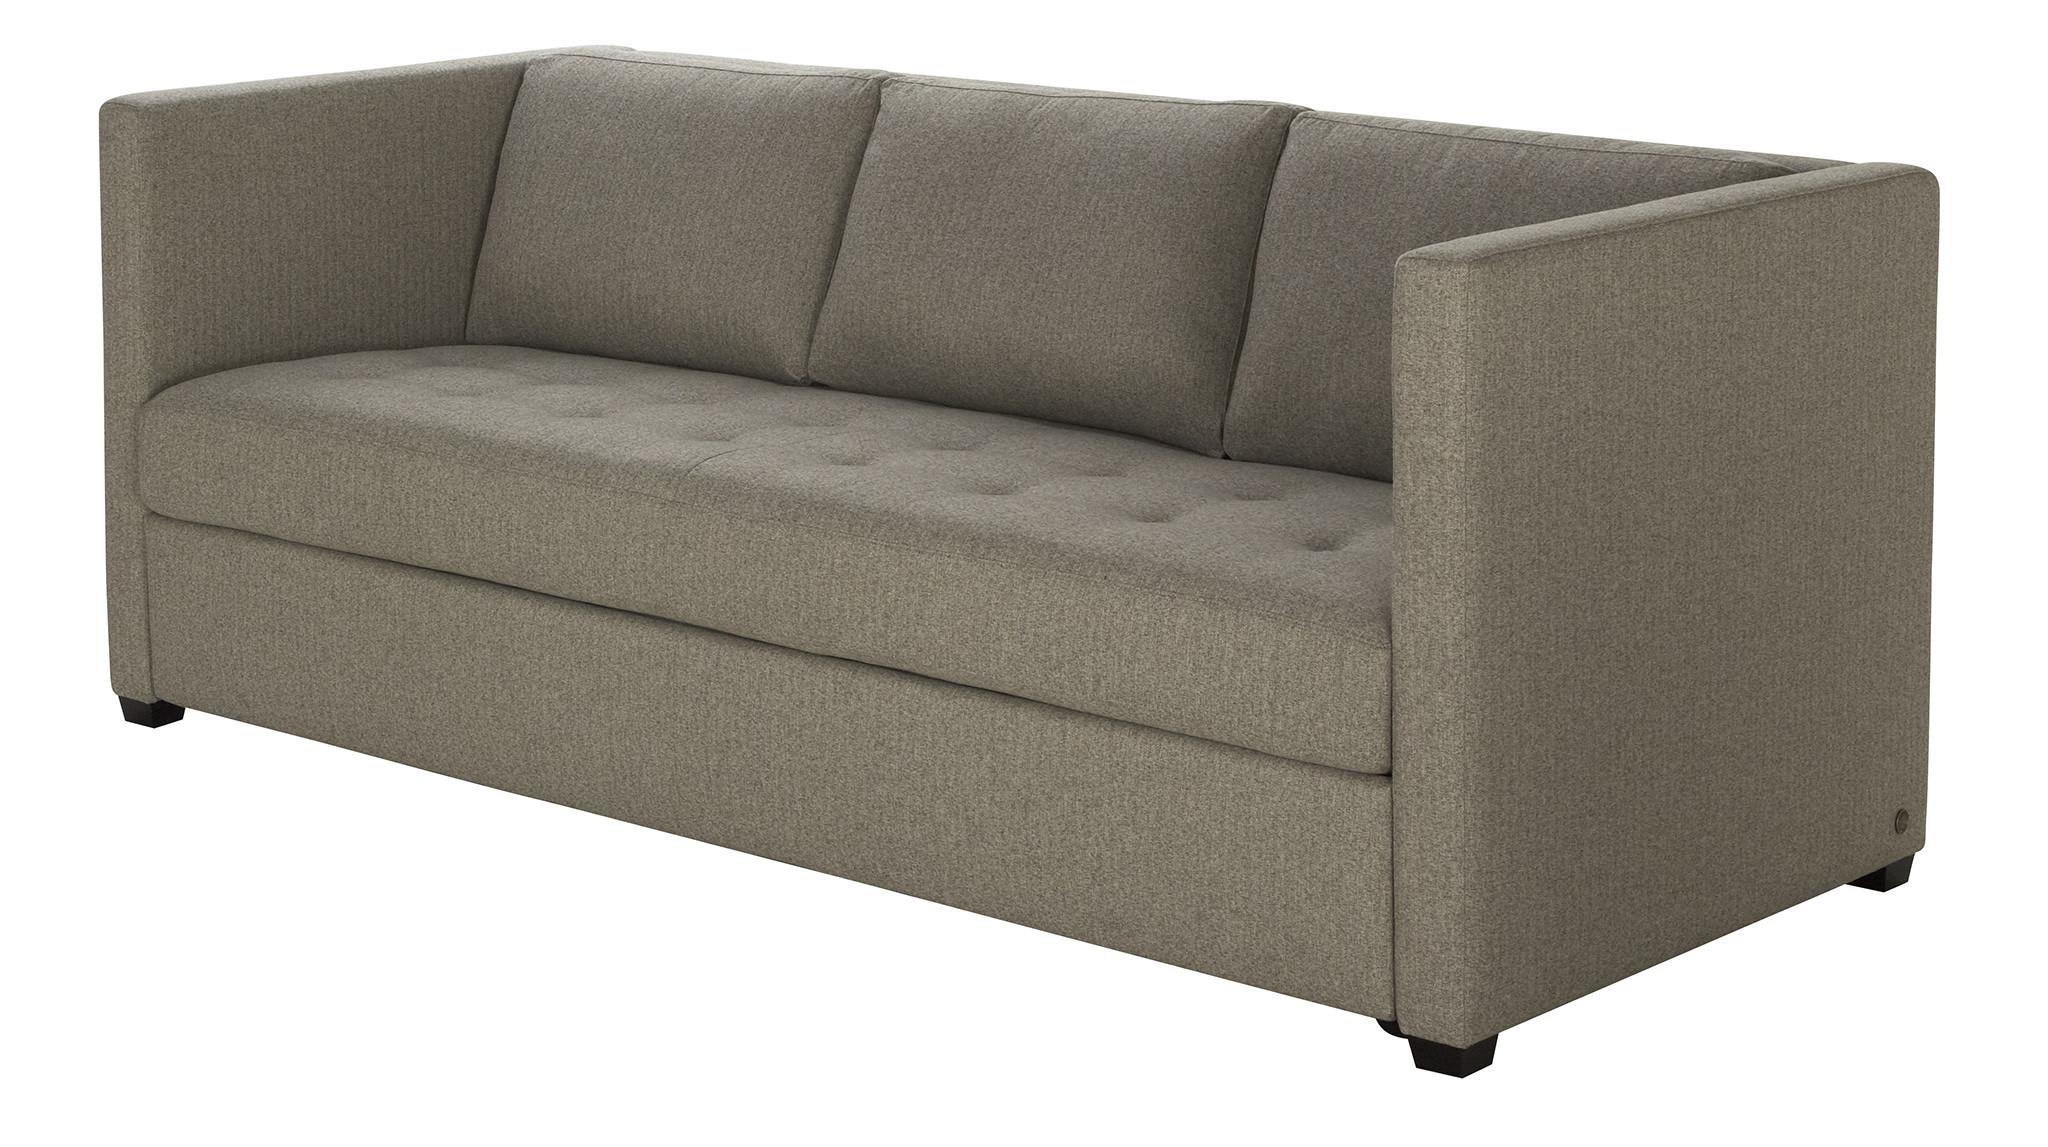 crate and barrel lounge sleeper sofa new cushions for beds 20 collection of sofas ideas